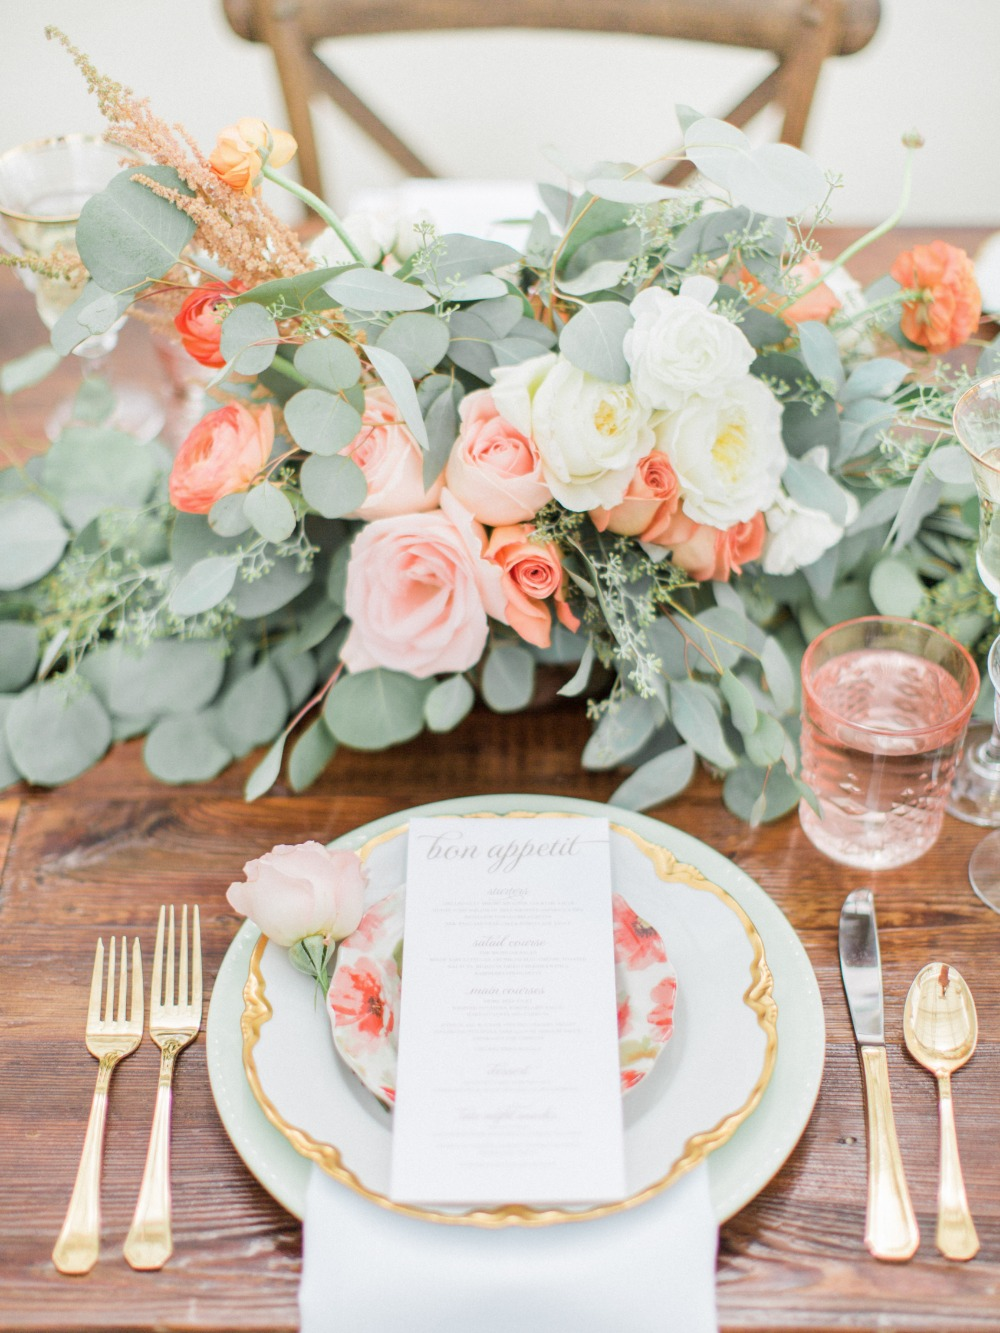 Stylish table decor and gold rimmed plates